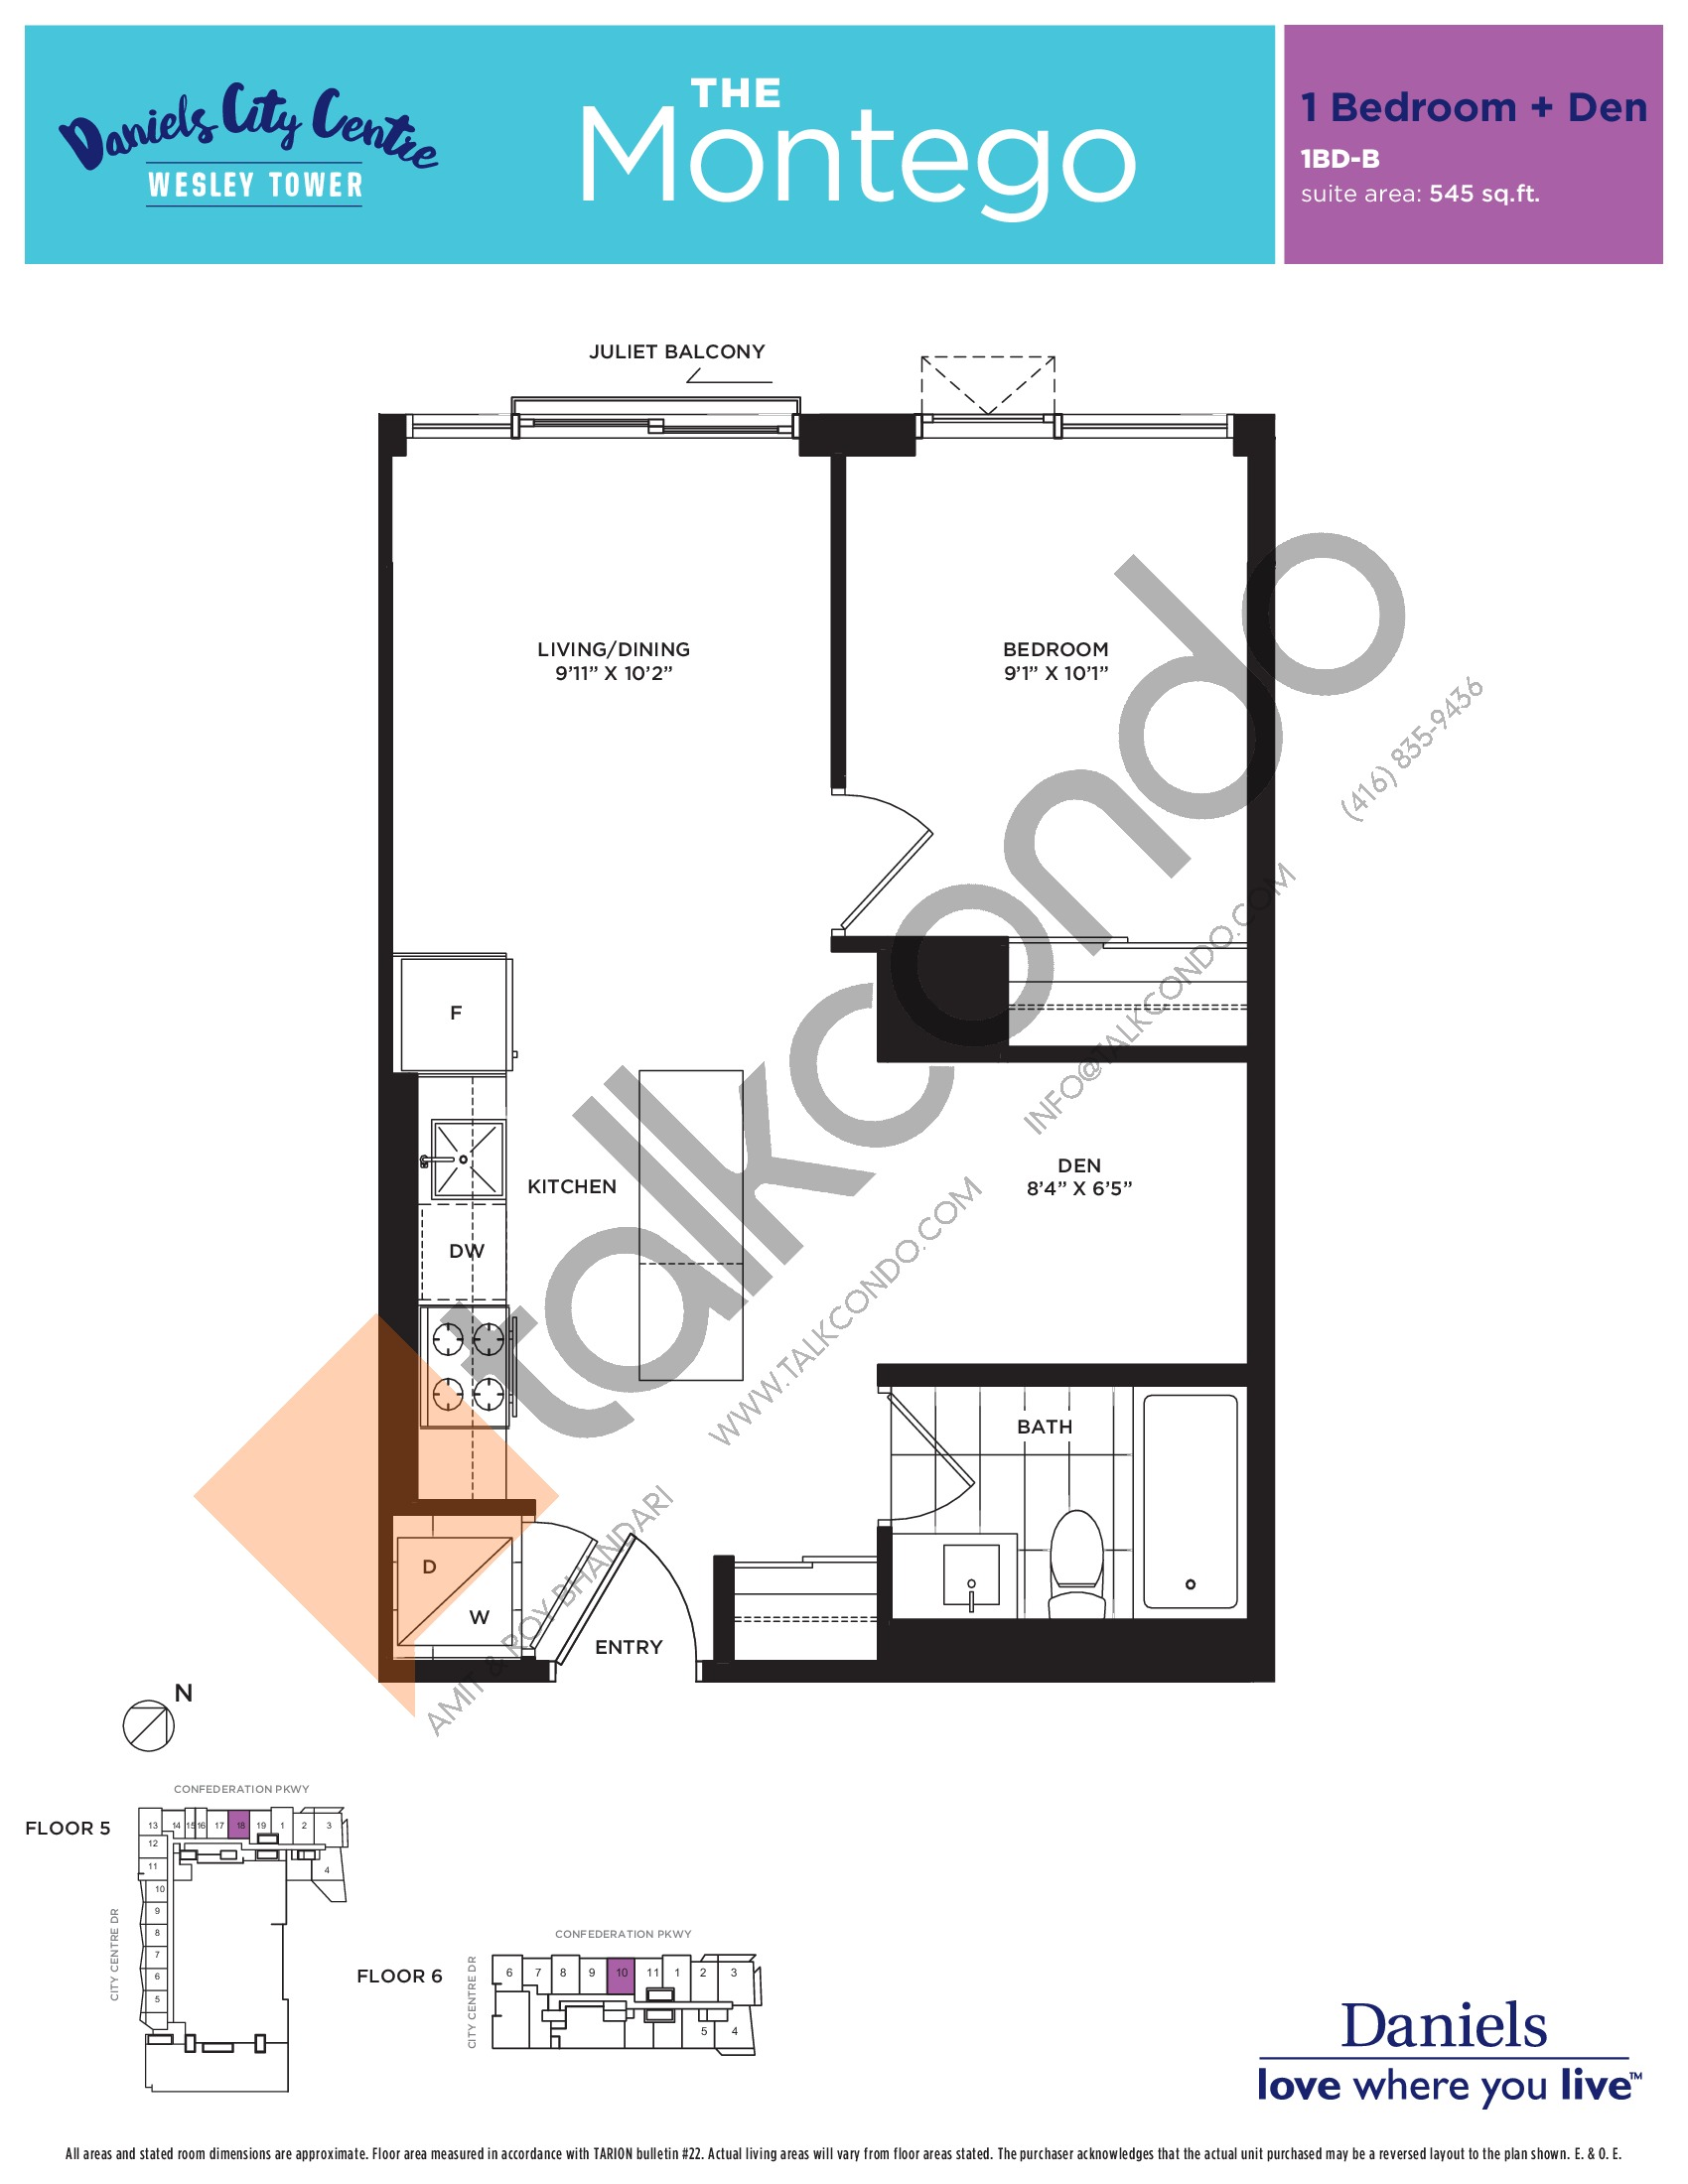 The Montego Floor Plan at The Wesley Tower at Daniels City Centre Condos - 545 sq.ft